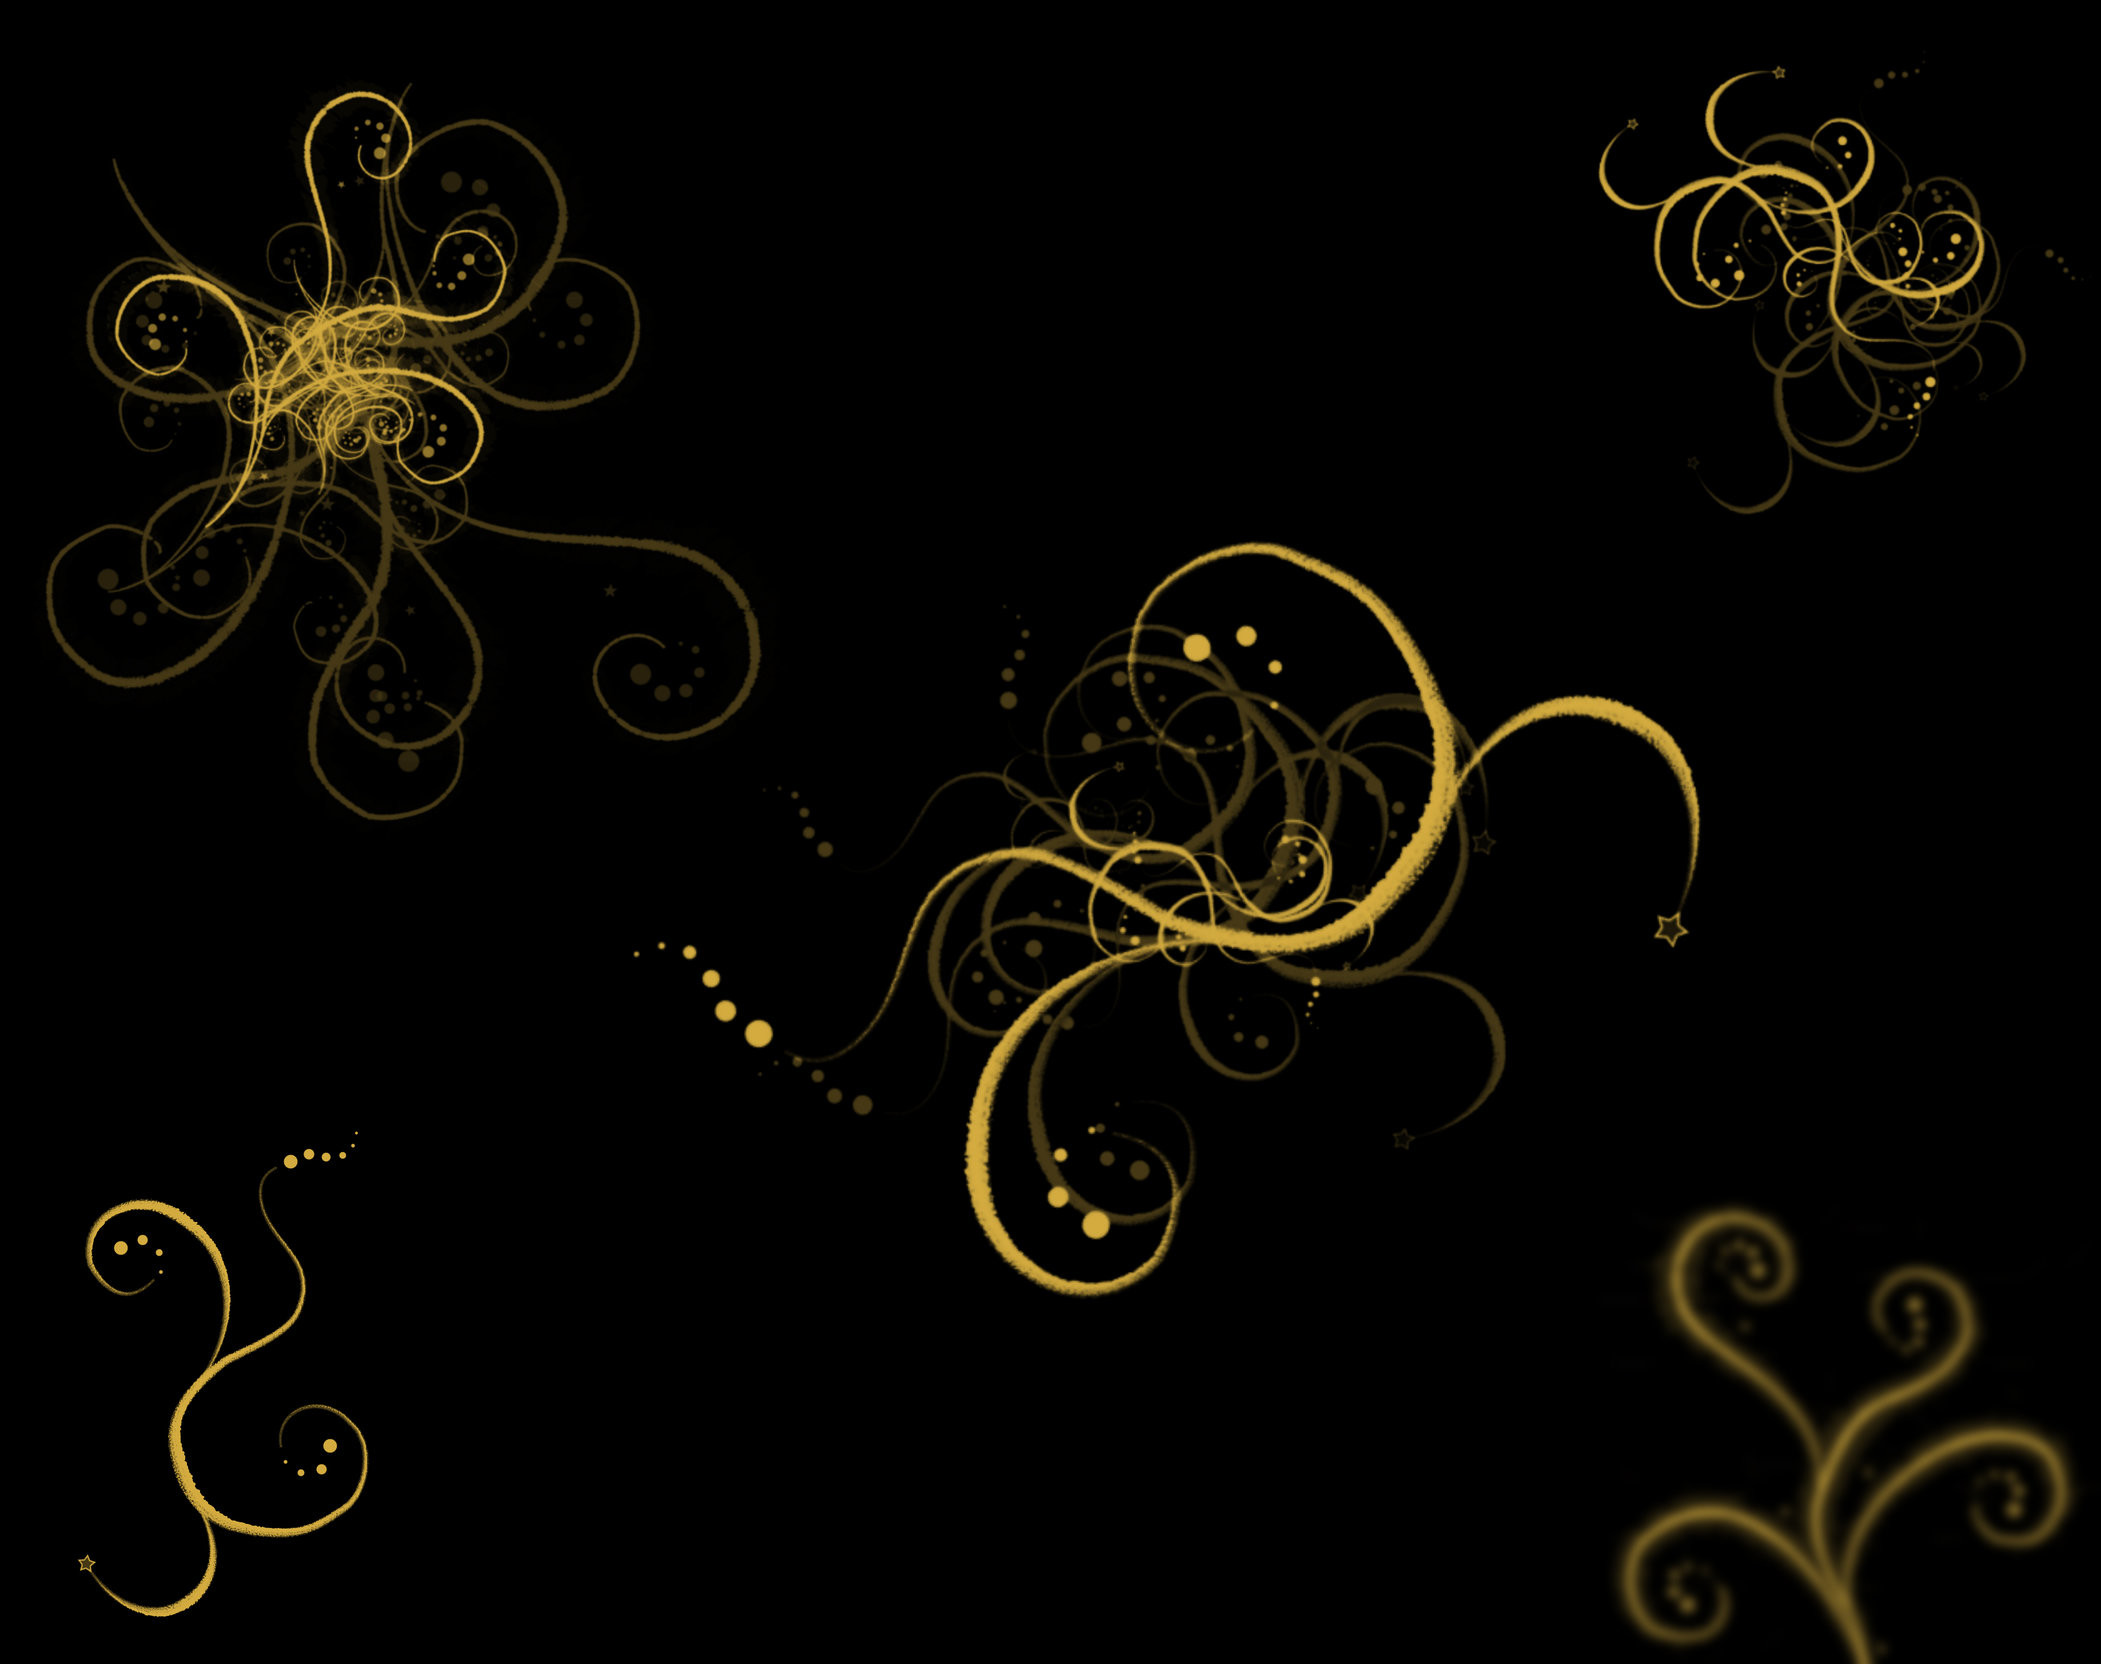 1920x1200 gold and black smoke wallpaper 7 free hd wallpaper